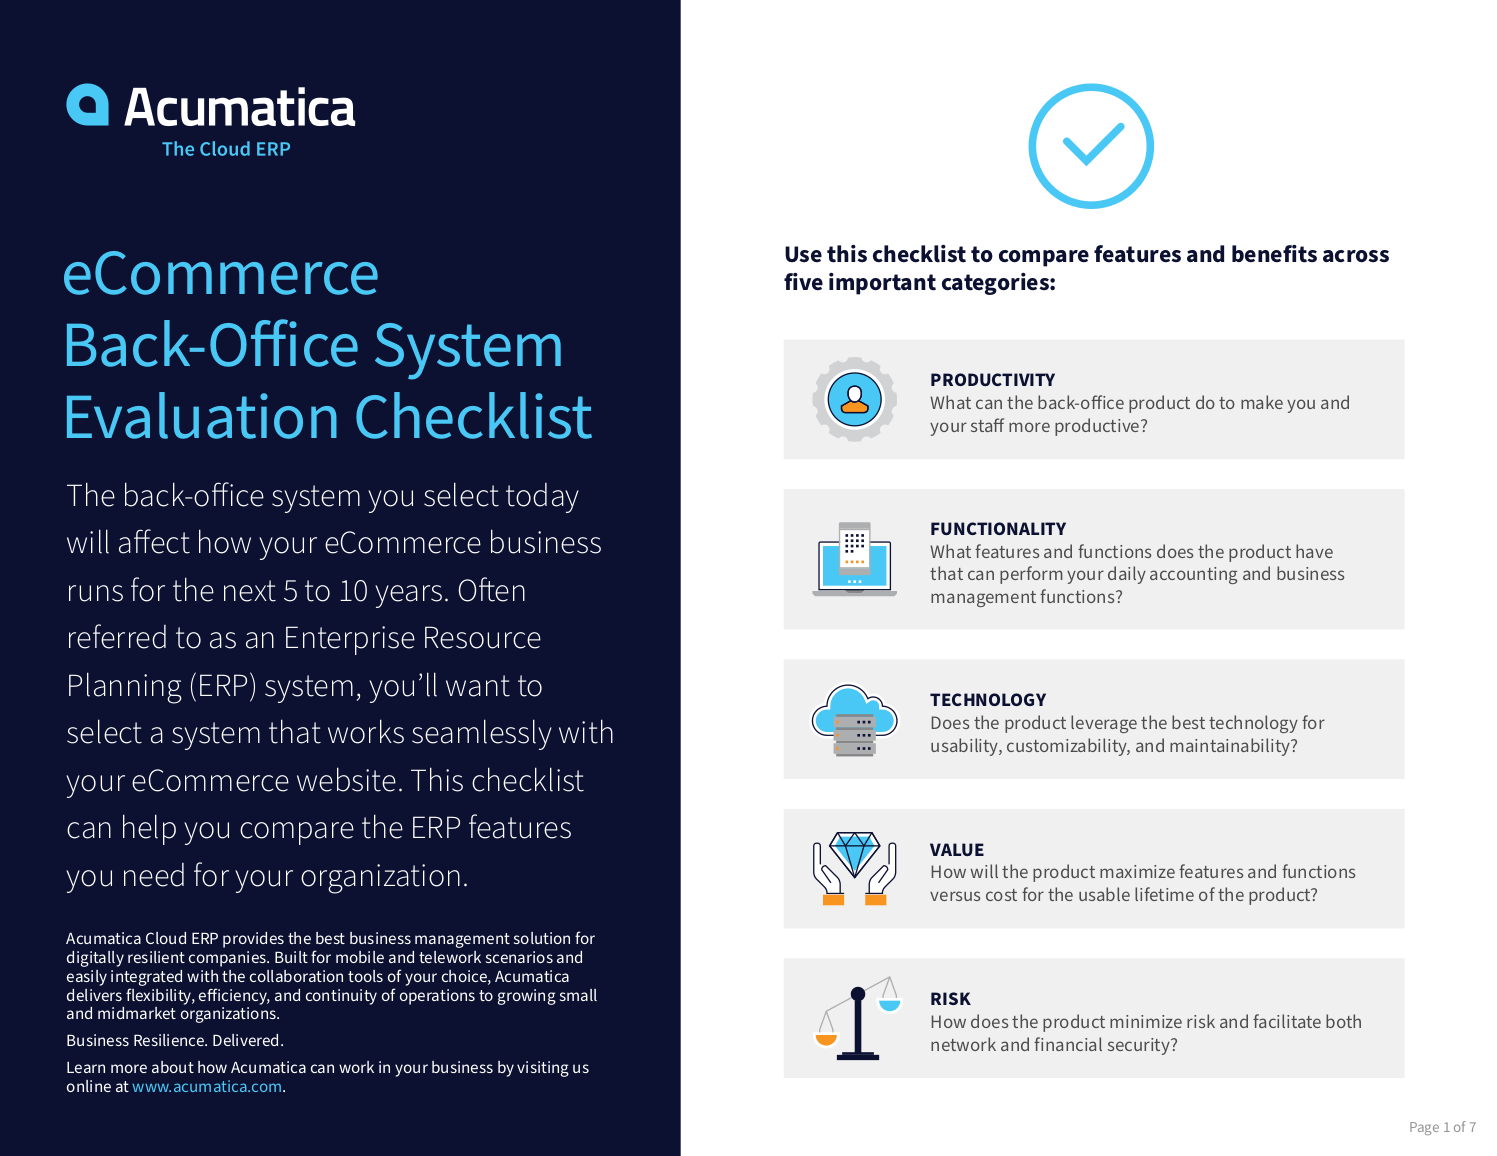 Select the right back-office system for your eCommerce business.